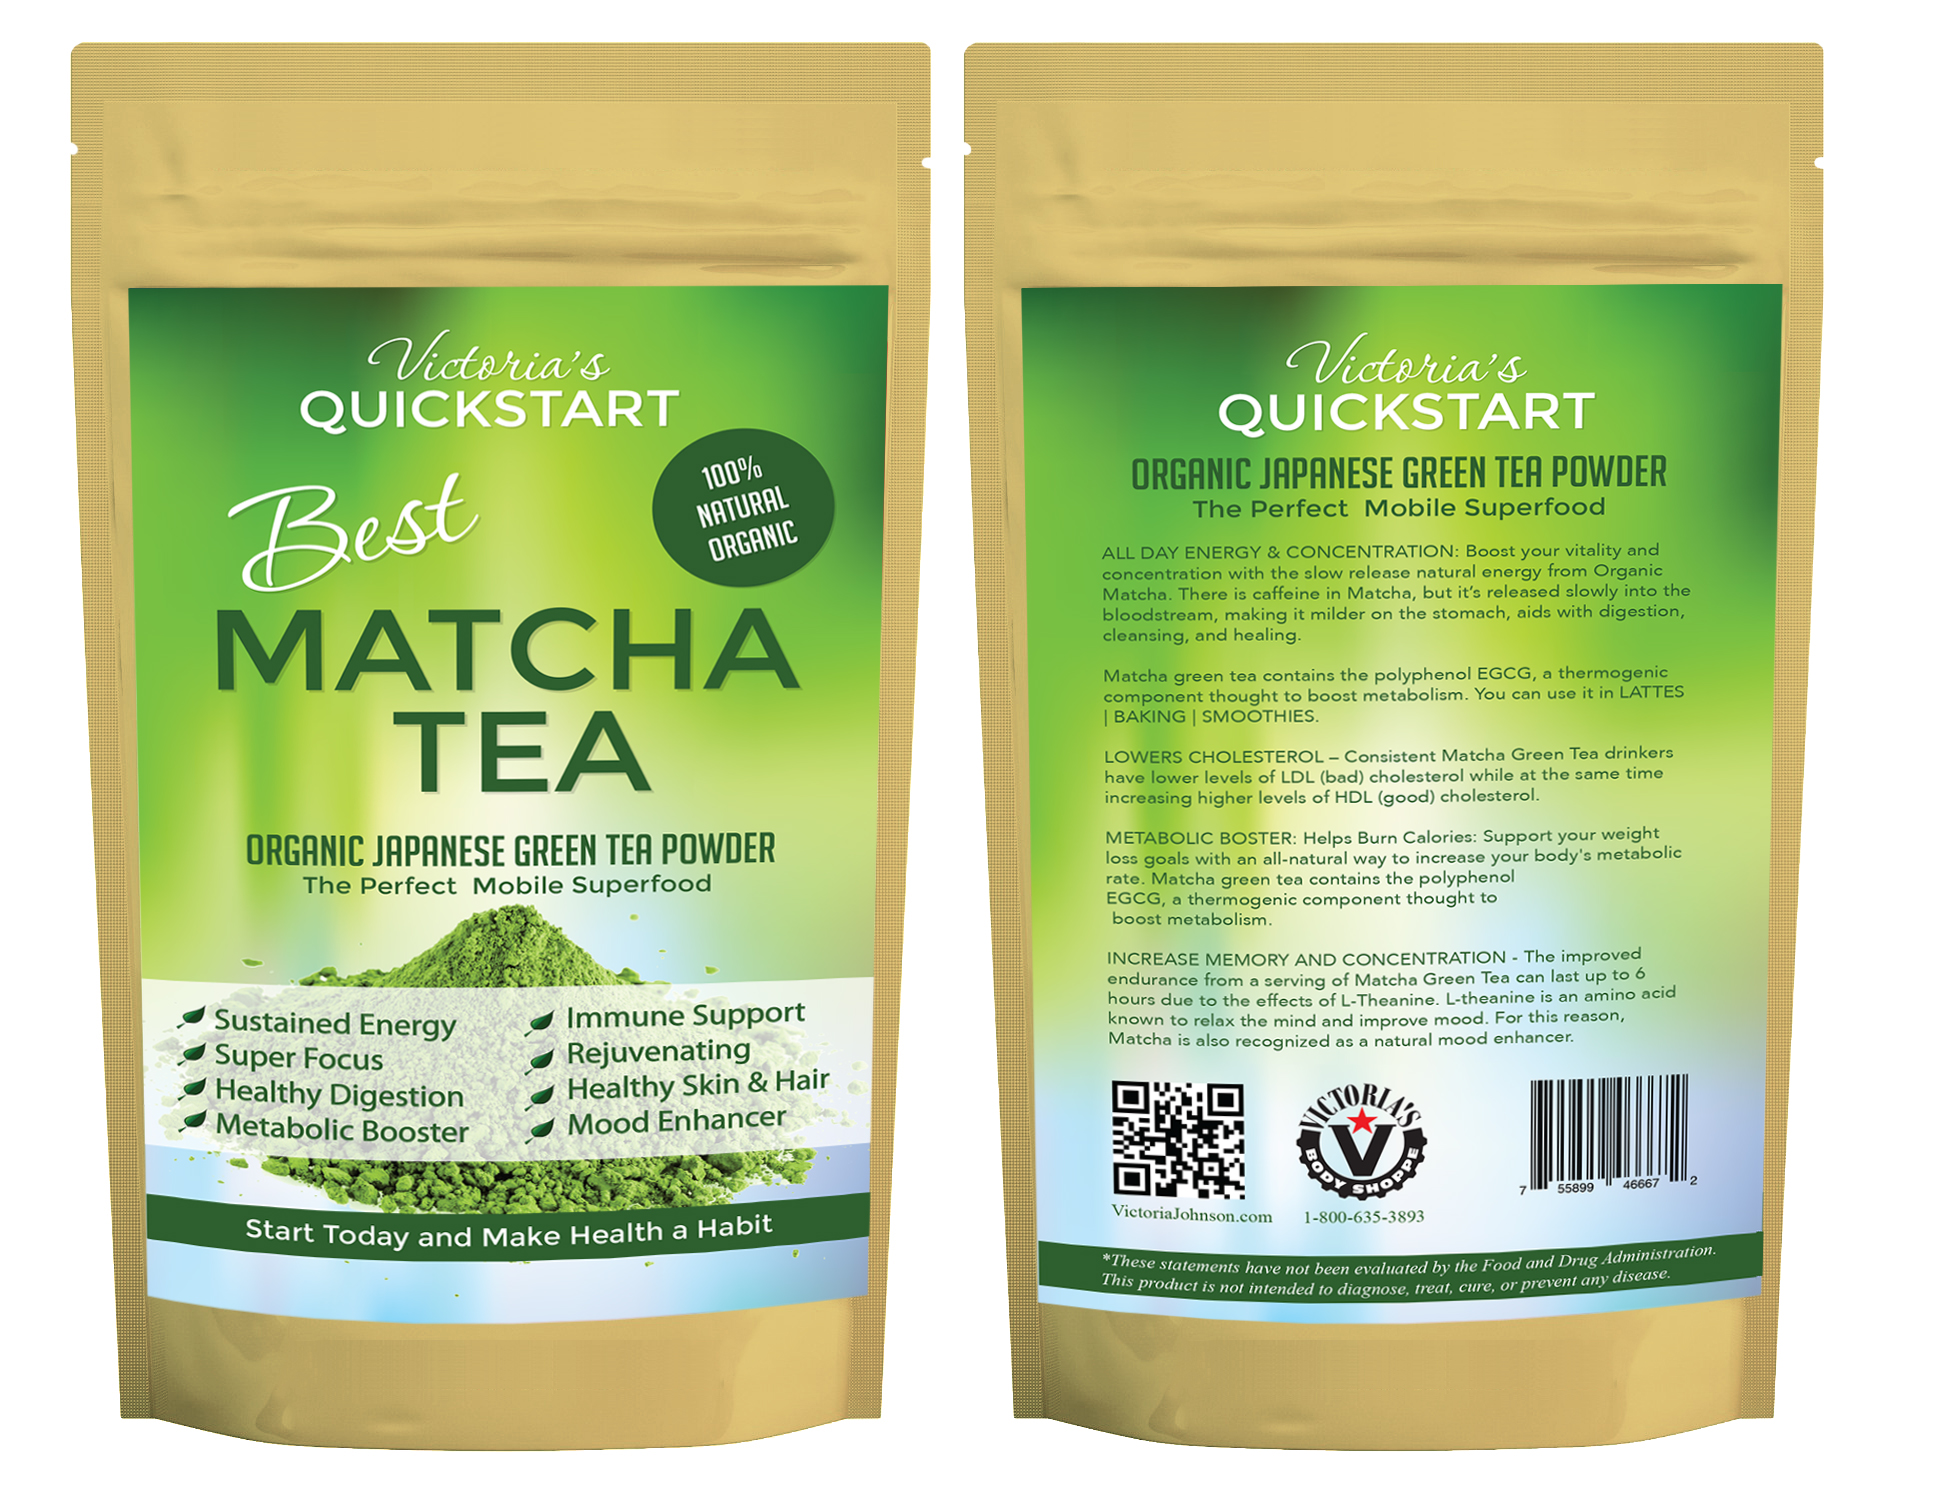 You Too Can Lose Weight With Matcha Green Tea